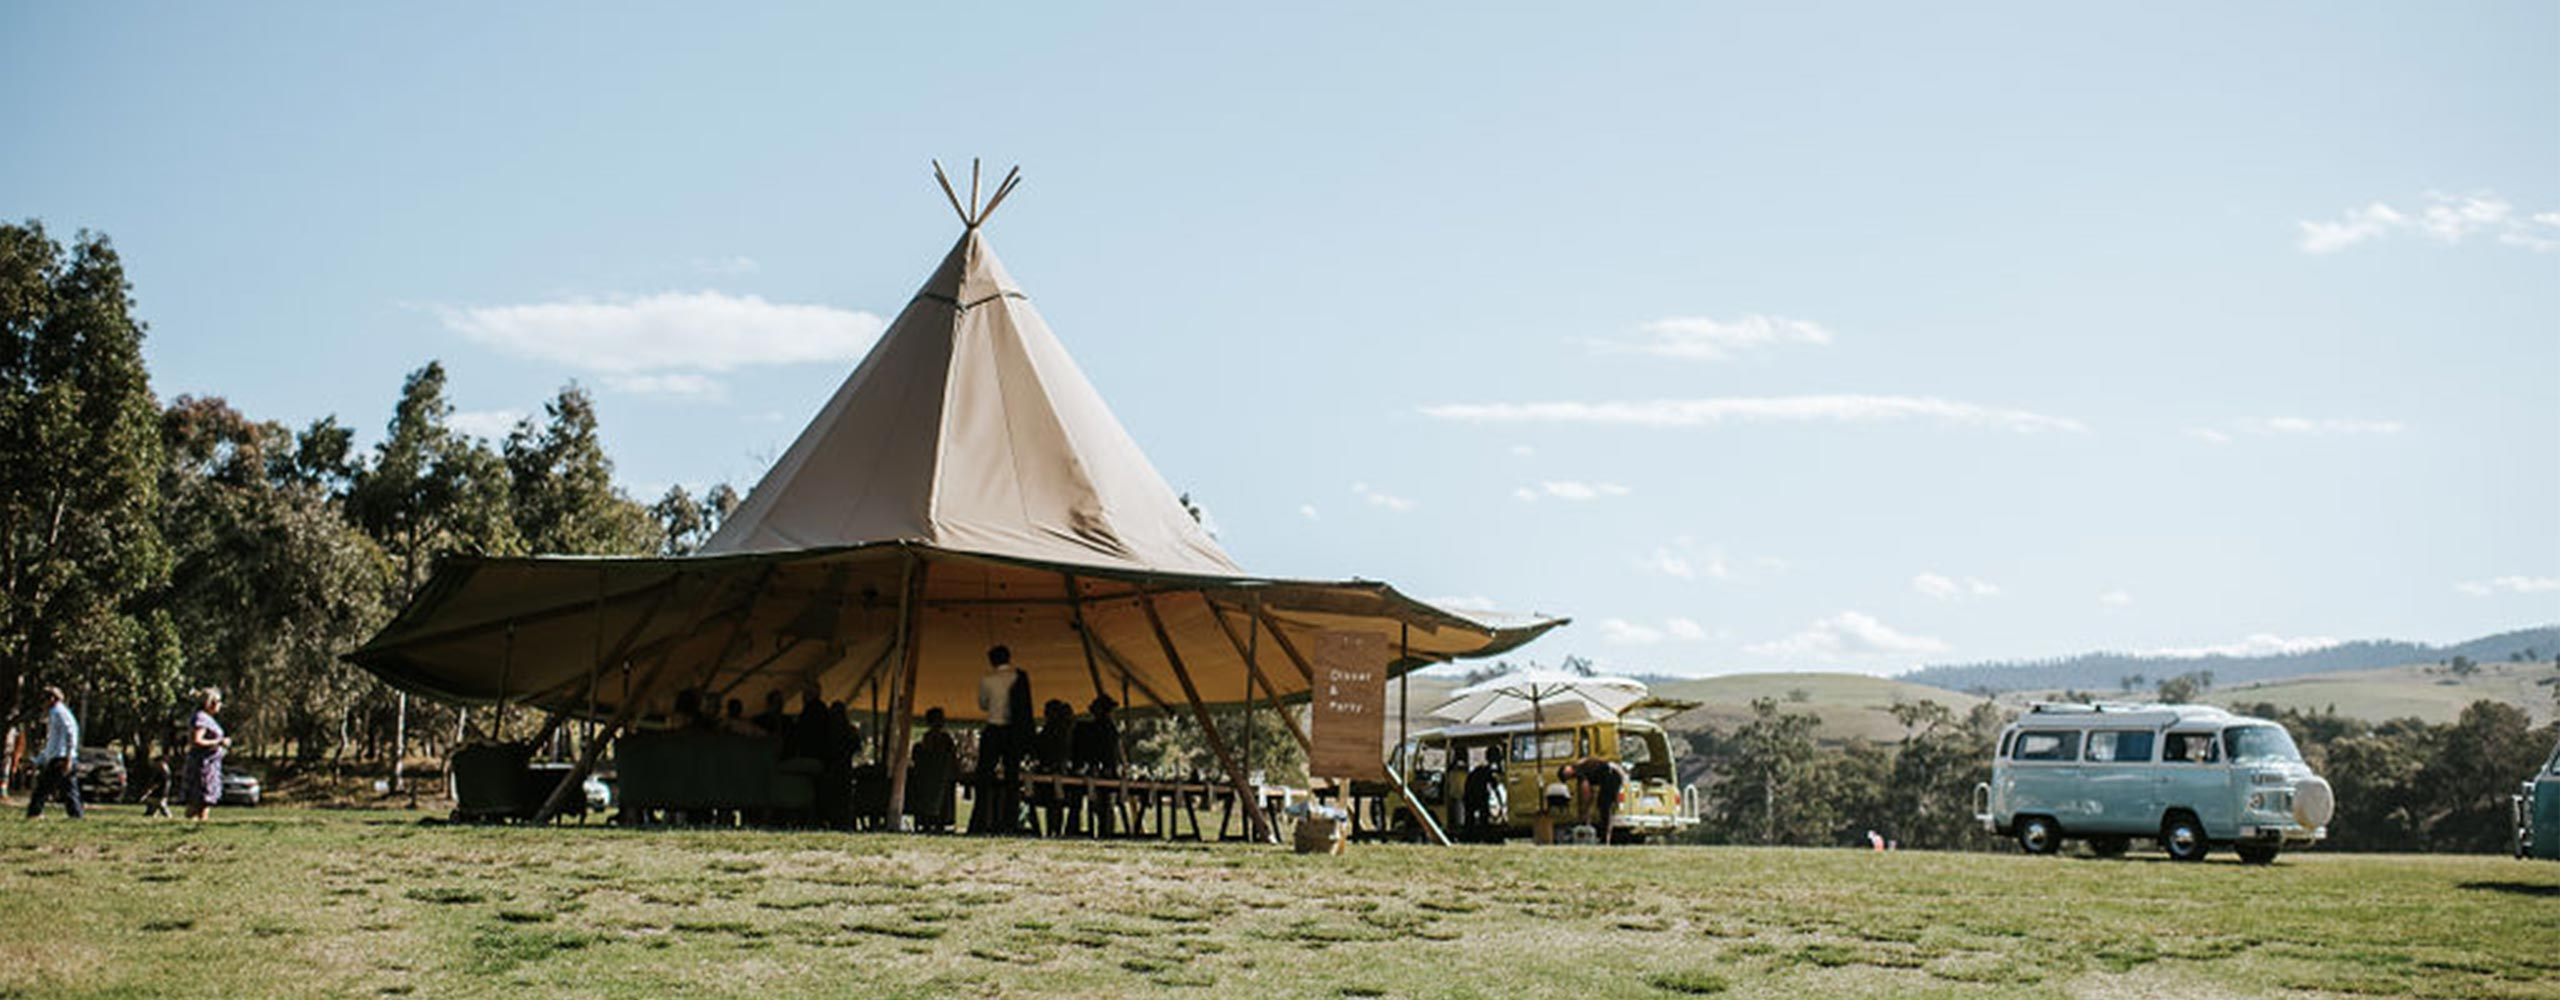 Giant tipi marquee at elopement wedding in Gippsland, Victoria